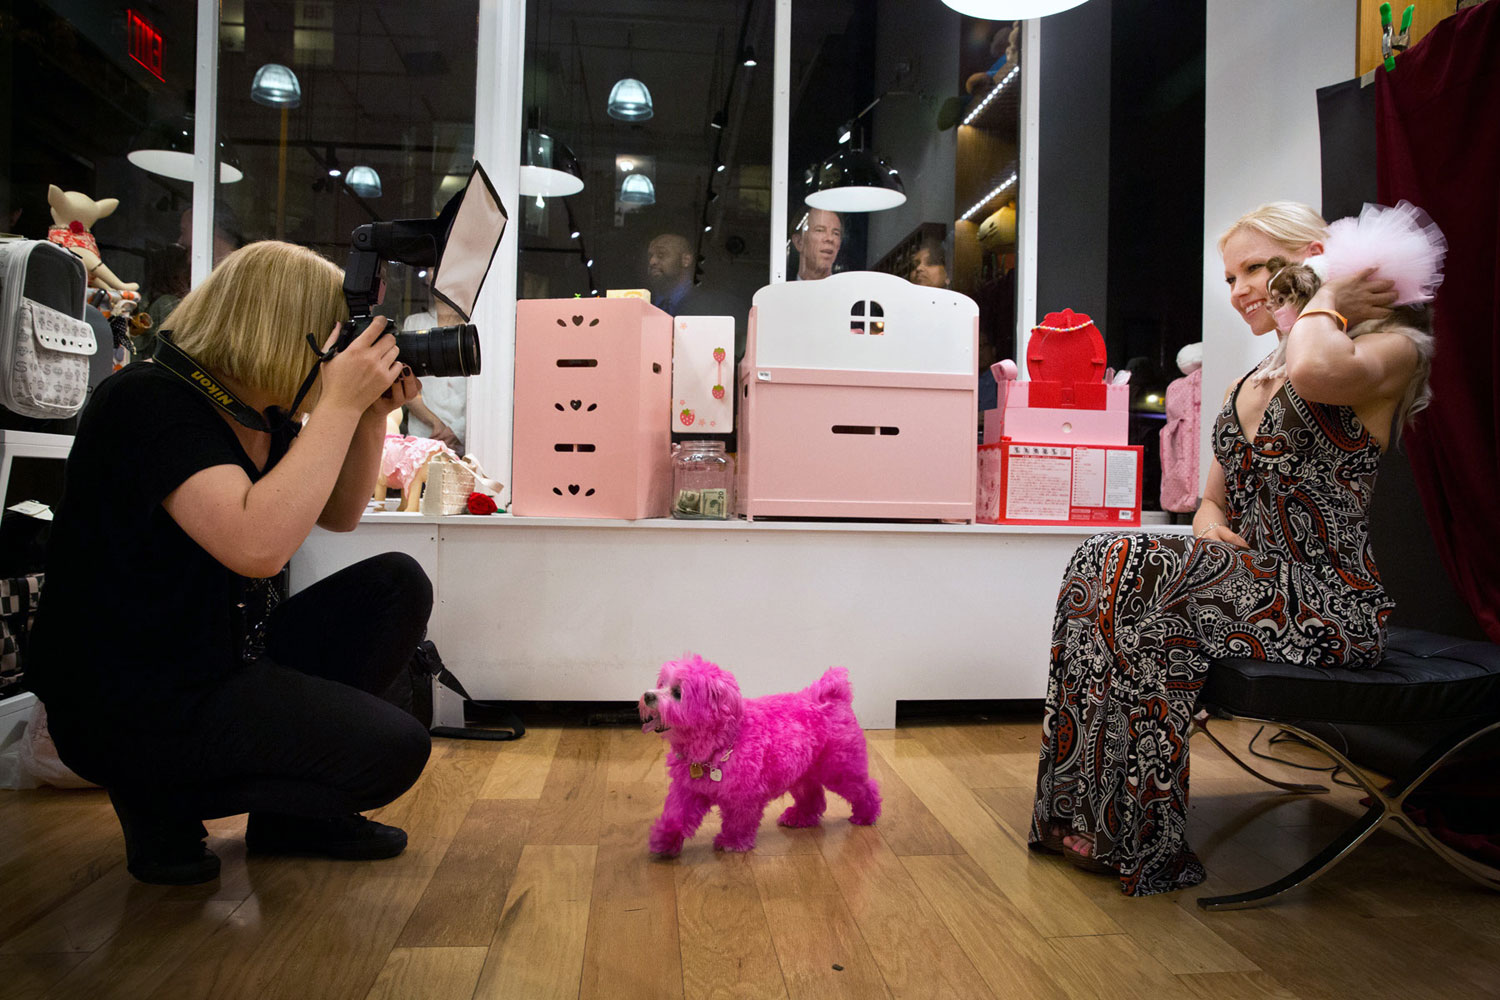 Sophie Gamand of Striking Paws Pet Photography photographs Summer Strand and her Chihuahua, Angel Song, at the Senior Soiree Benefit for K9Kastle hosted by City Dog Expert and Han Nari & MG. The happy pink dog, Franky, companion to Gina Agnello, runs wild.